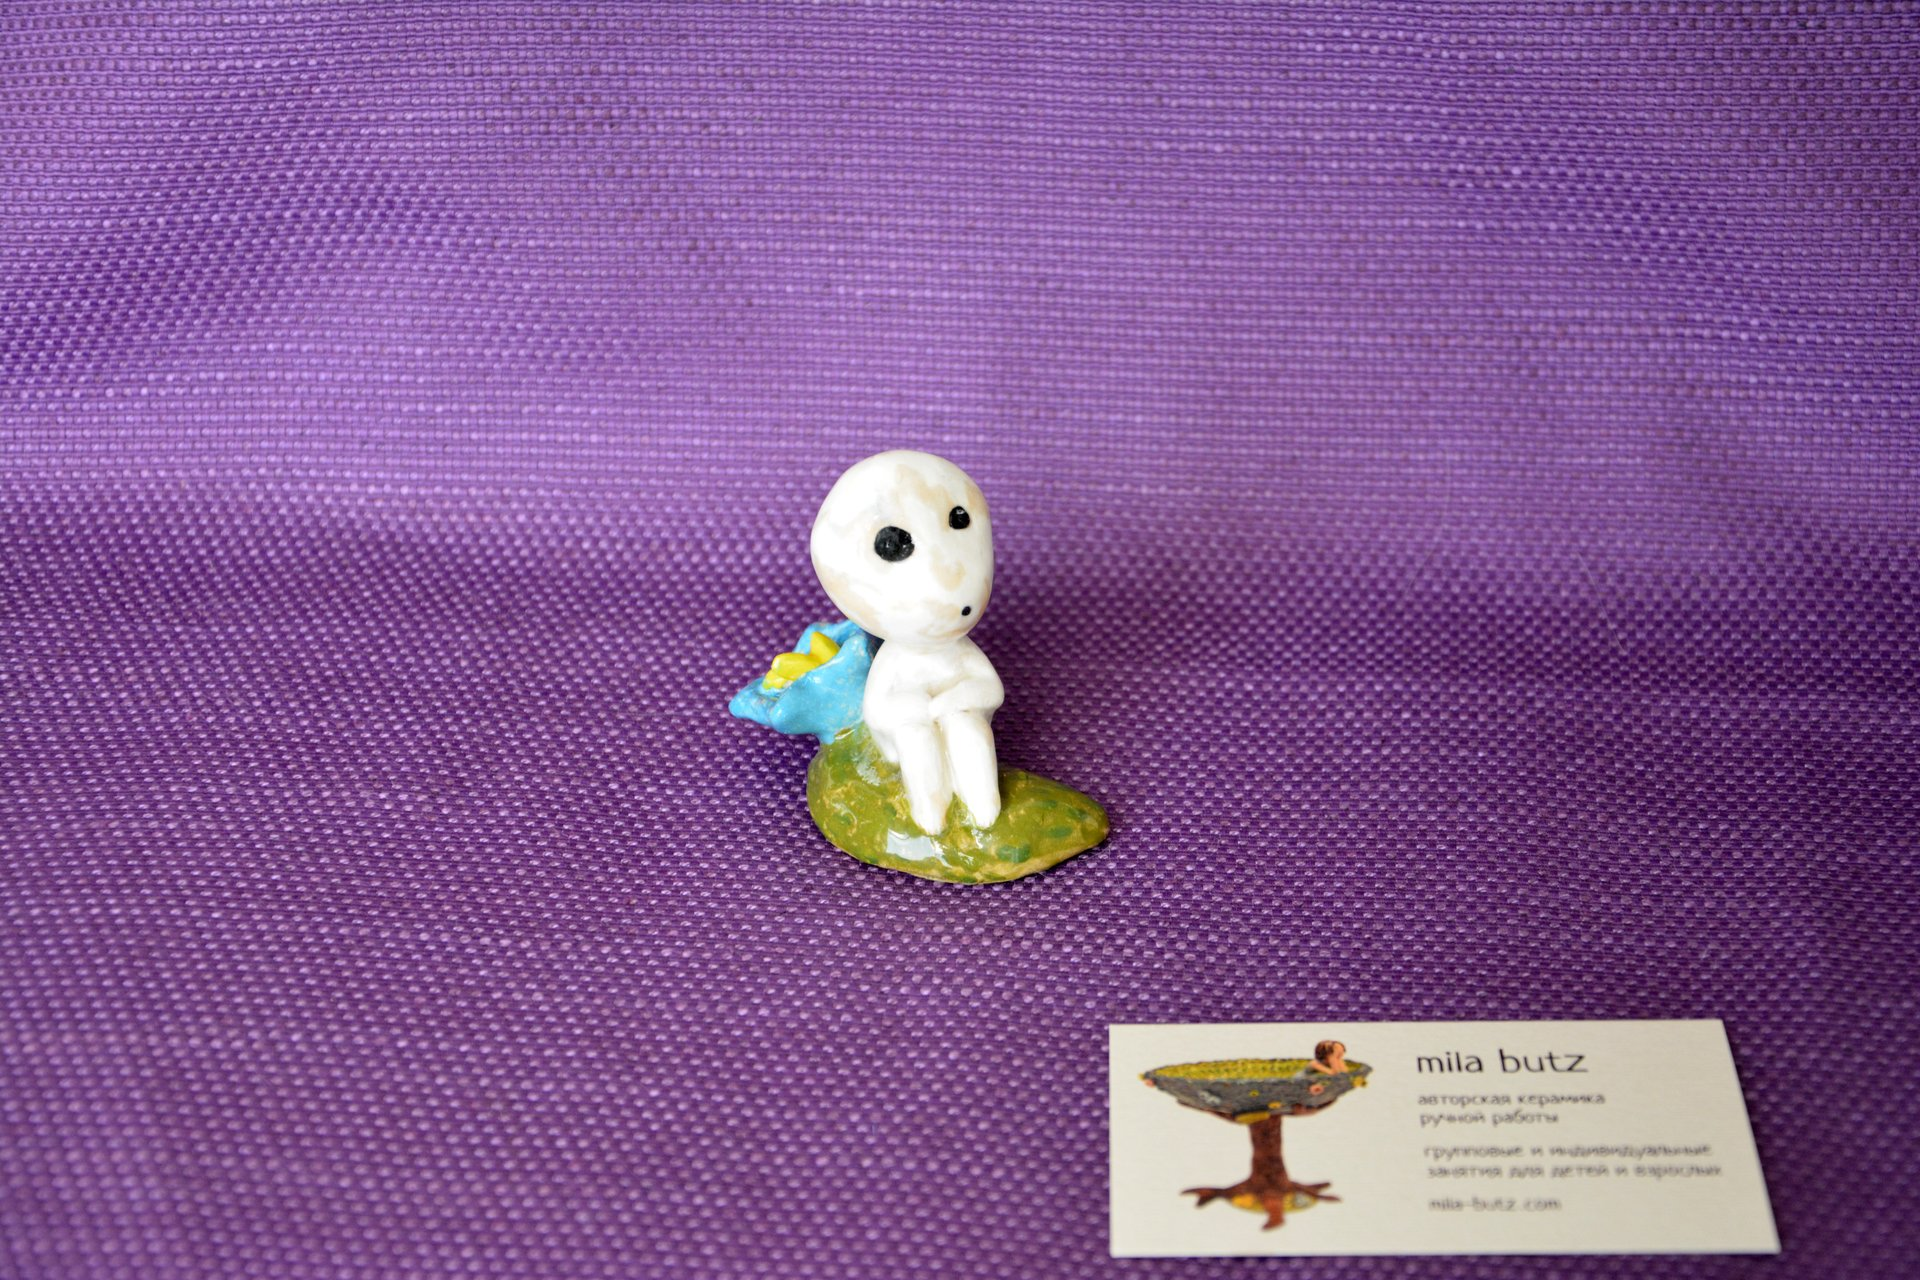 Figurine of Kodama Spirit of a tree by a flower, height - 6 cm, photo 2 of 4.